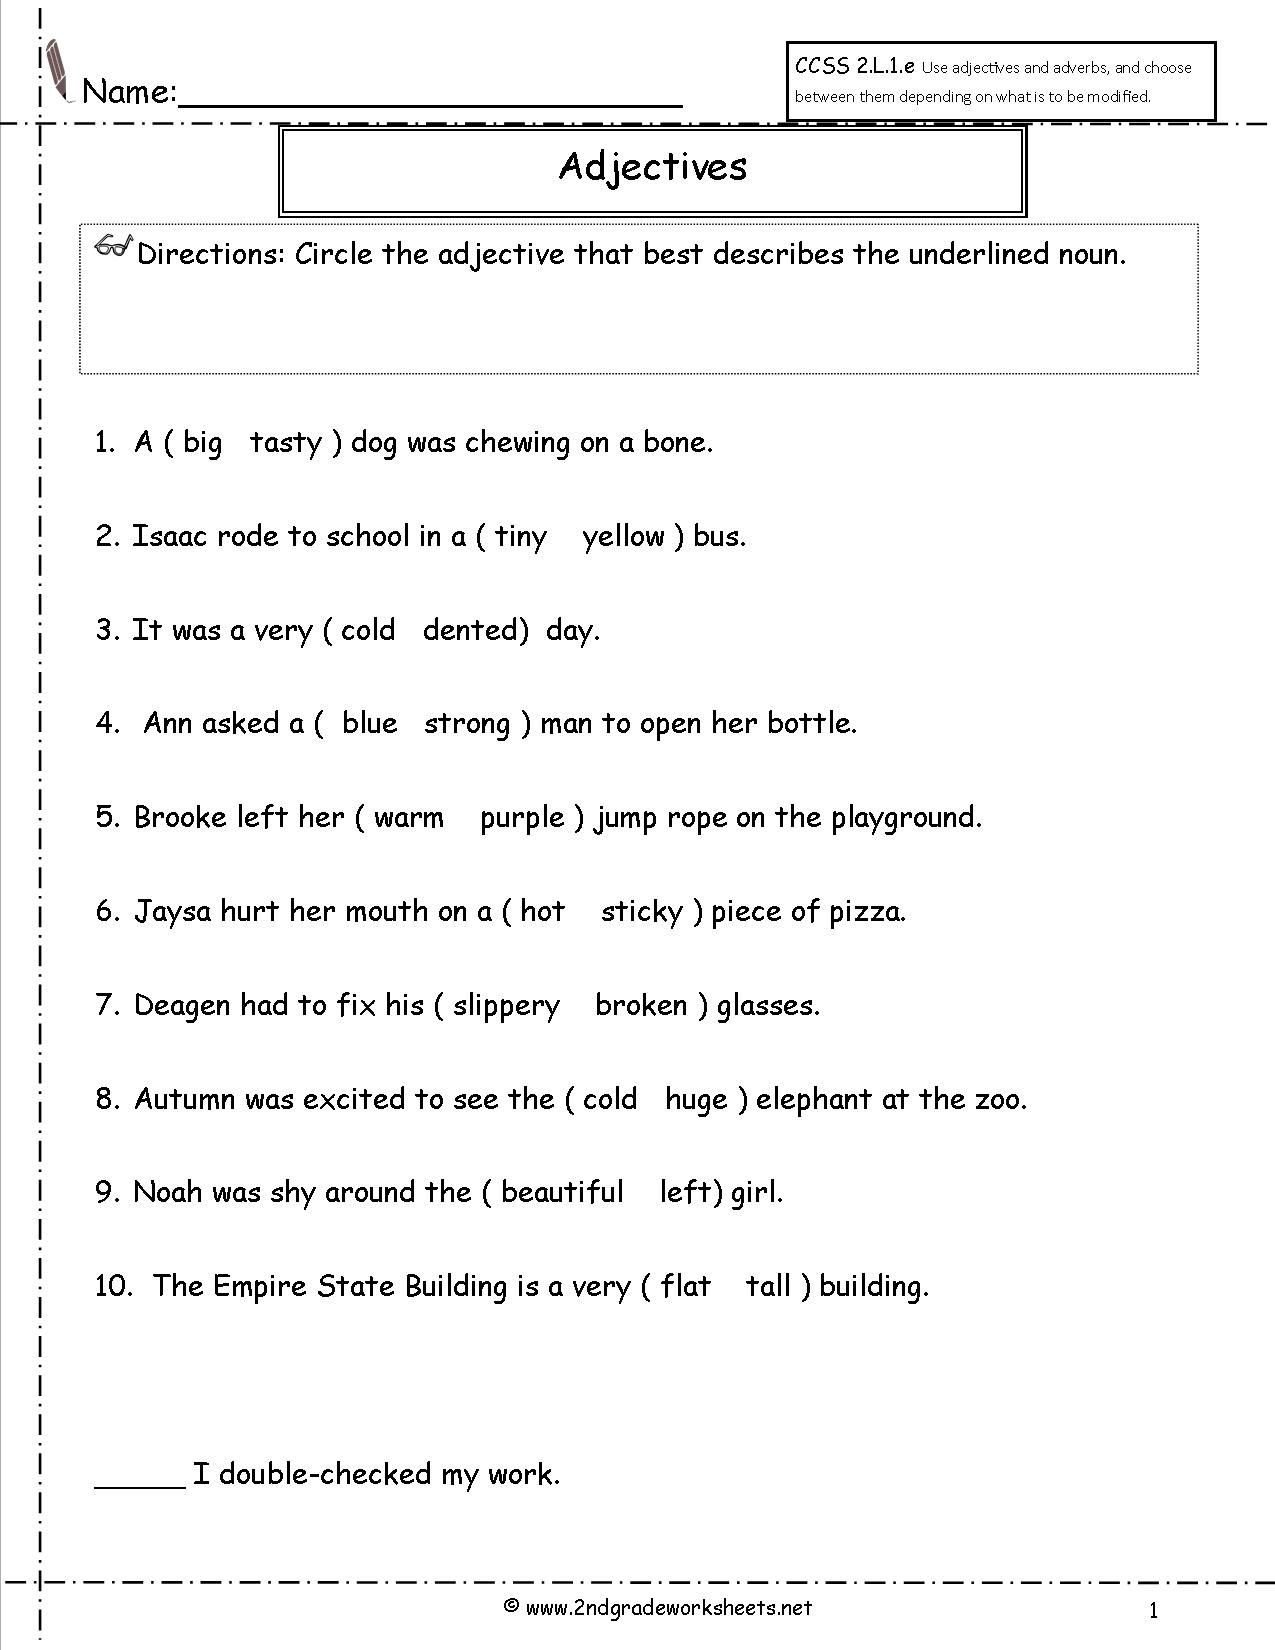 Adjective Worksheets 2nd Grade Free Using Adjectives and Adverbs Worksheets